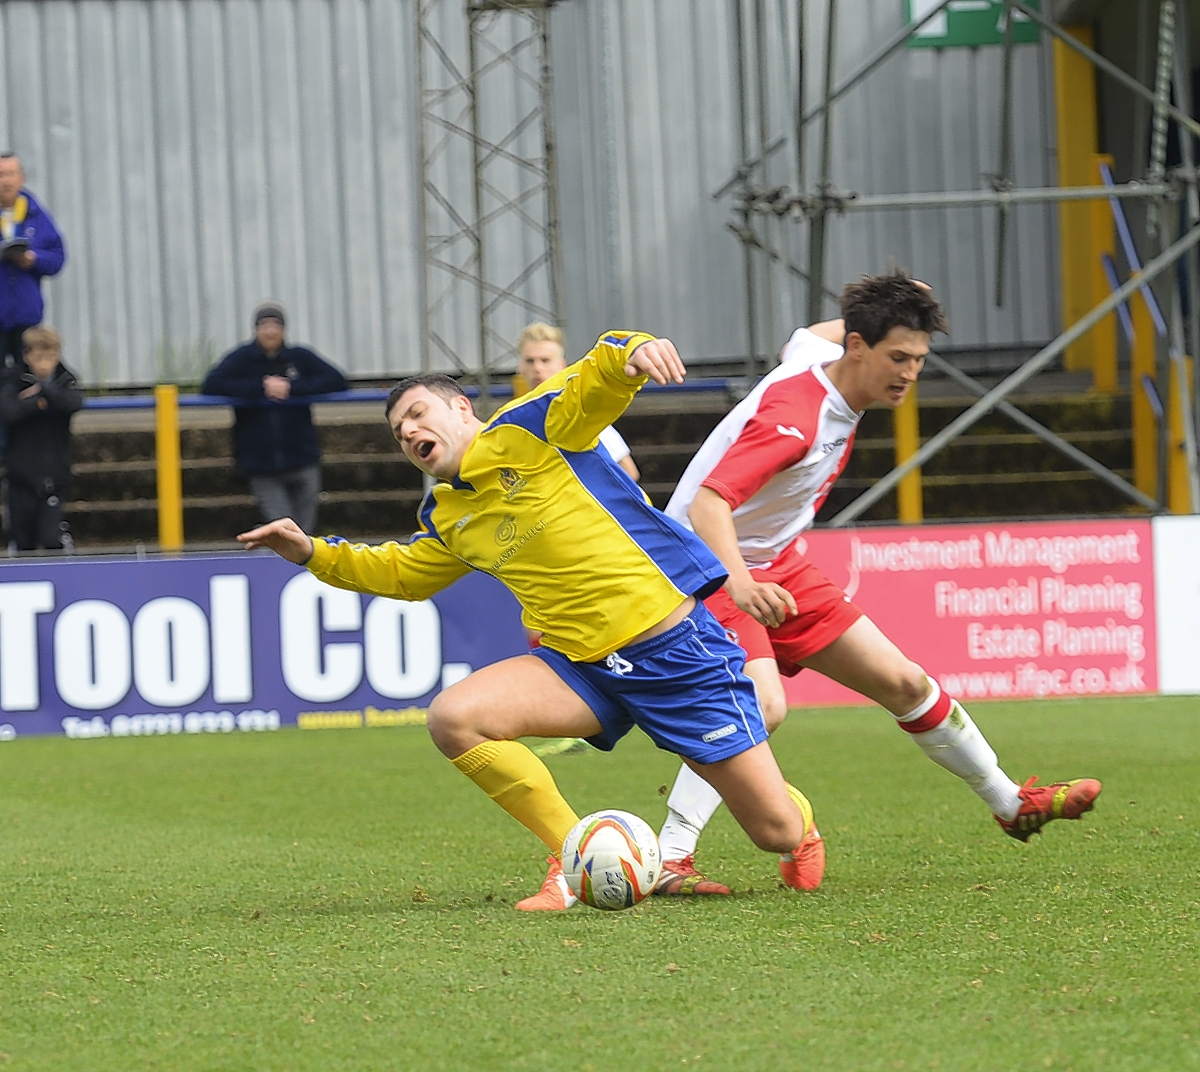 The Saints suffered a setback against Poole Town: Robert Walkley